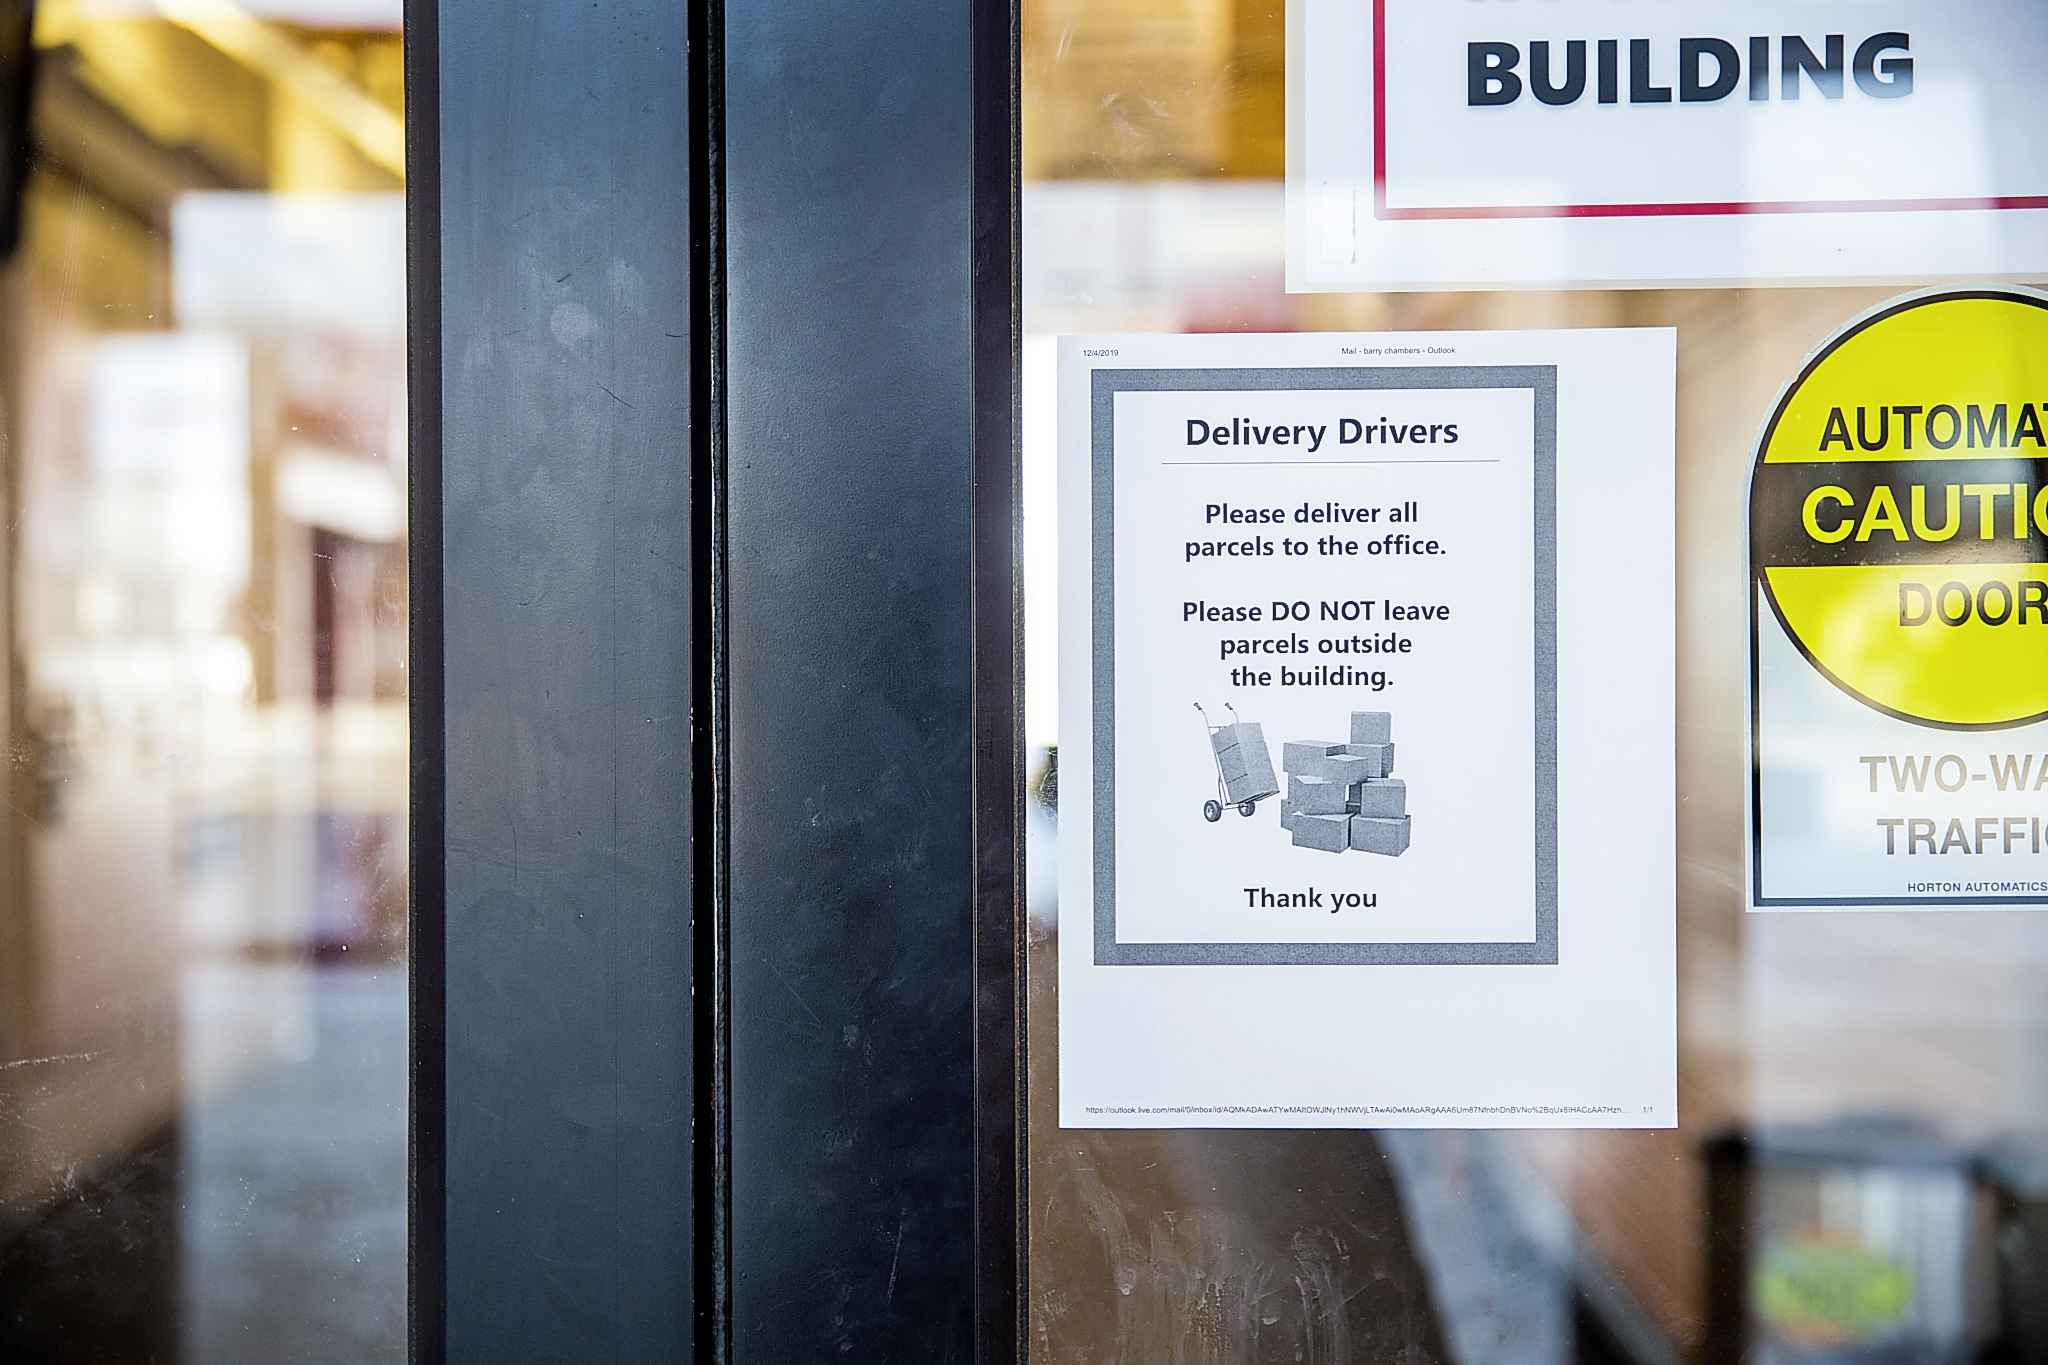 Sturgeon Heights Community Centre began accepting  packages for pickup last month as part of a safe package delivery program. The parcel service started in response to growing concern about so-called porch pirates — thieves who stalk Canada Post trucks and snag packages from doorsteps. (Mikaela MacKenzie / Winnipeg Free Press)